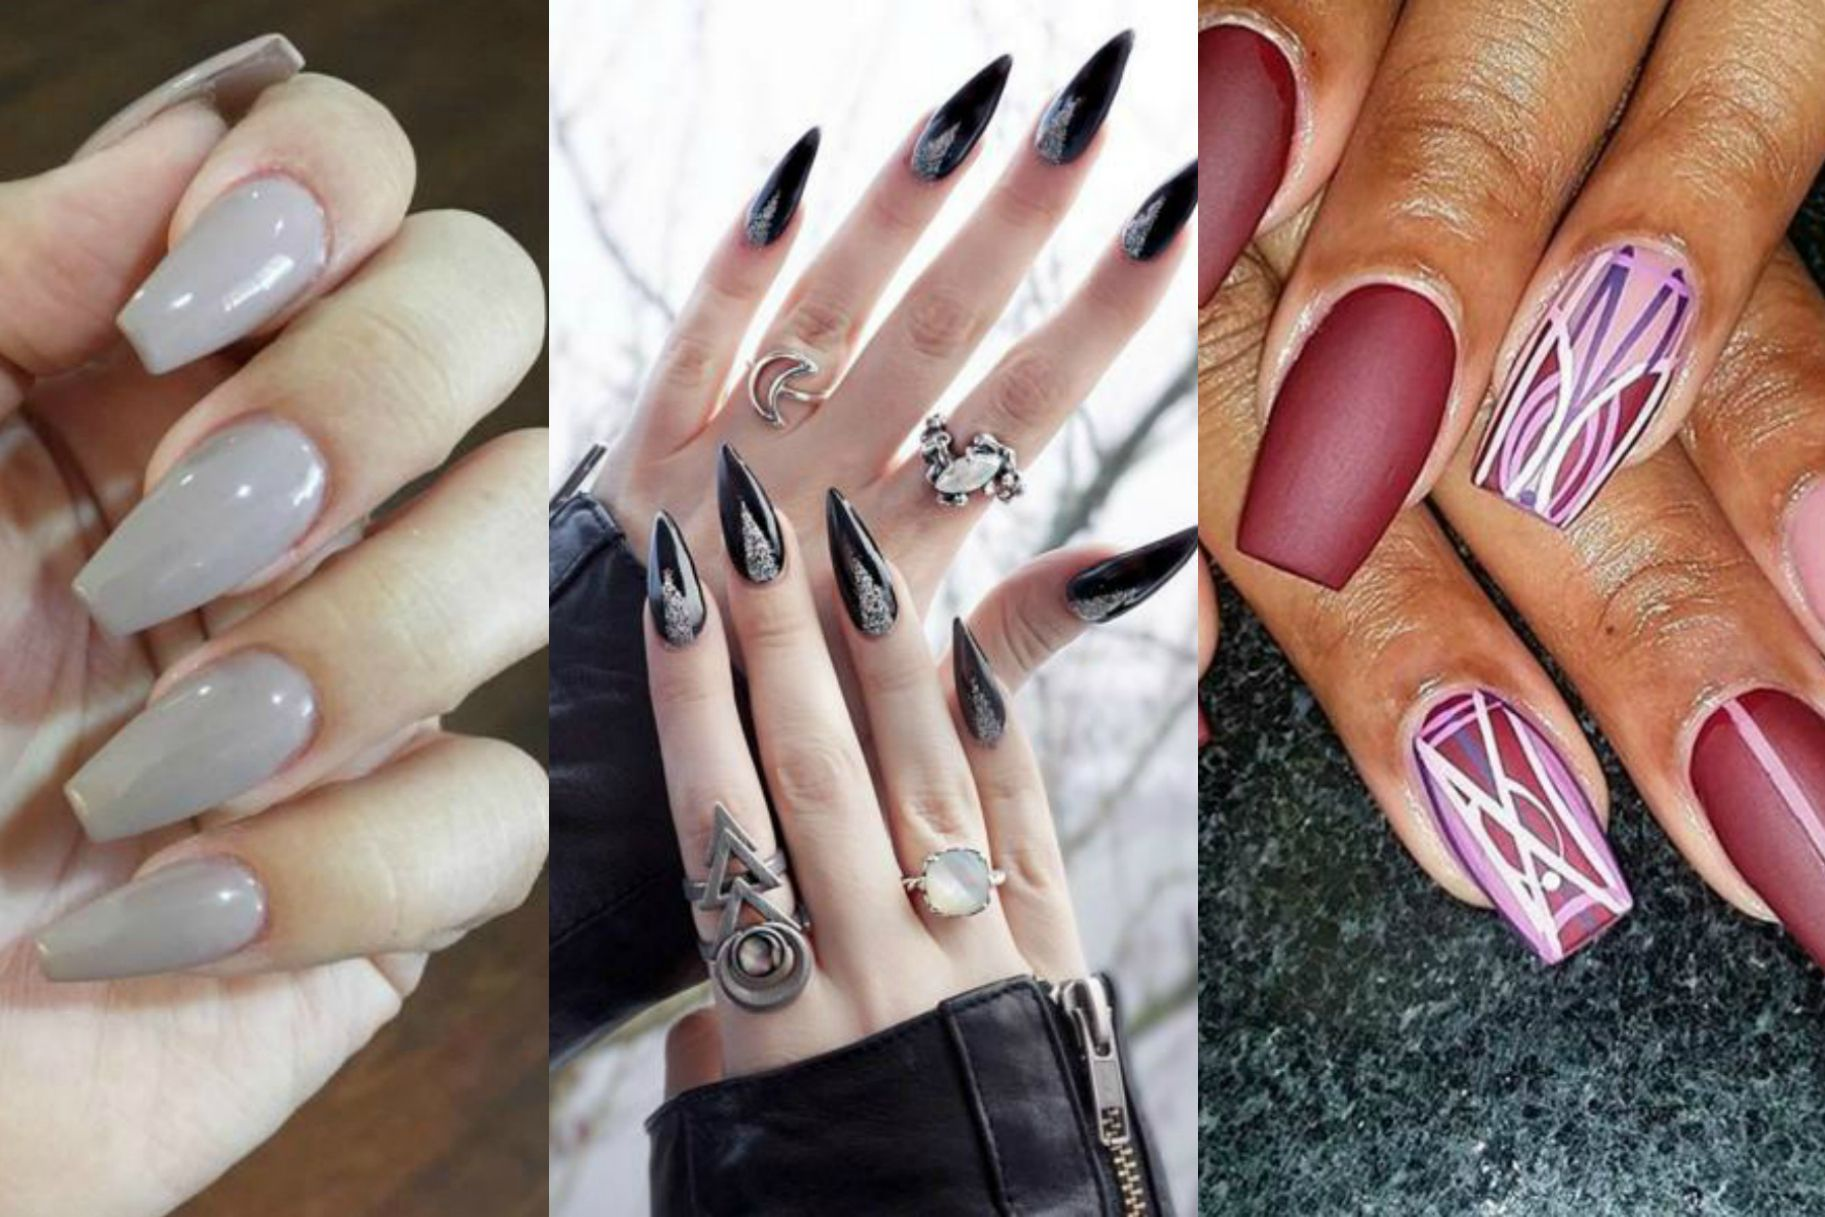 6 Nail Trends To Fall In Love With In 2016 | nails | Pinterest ...